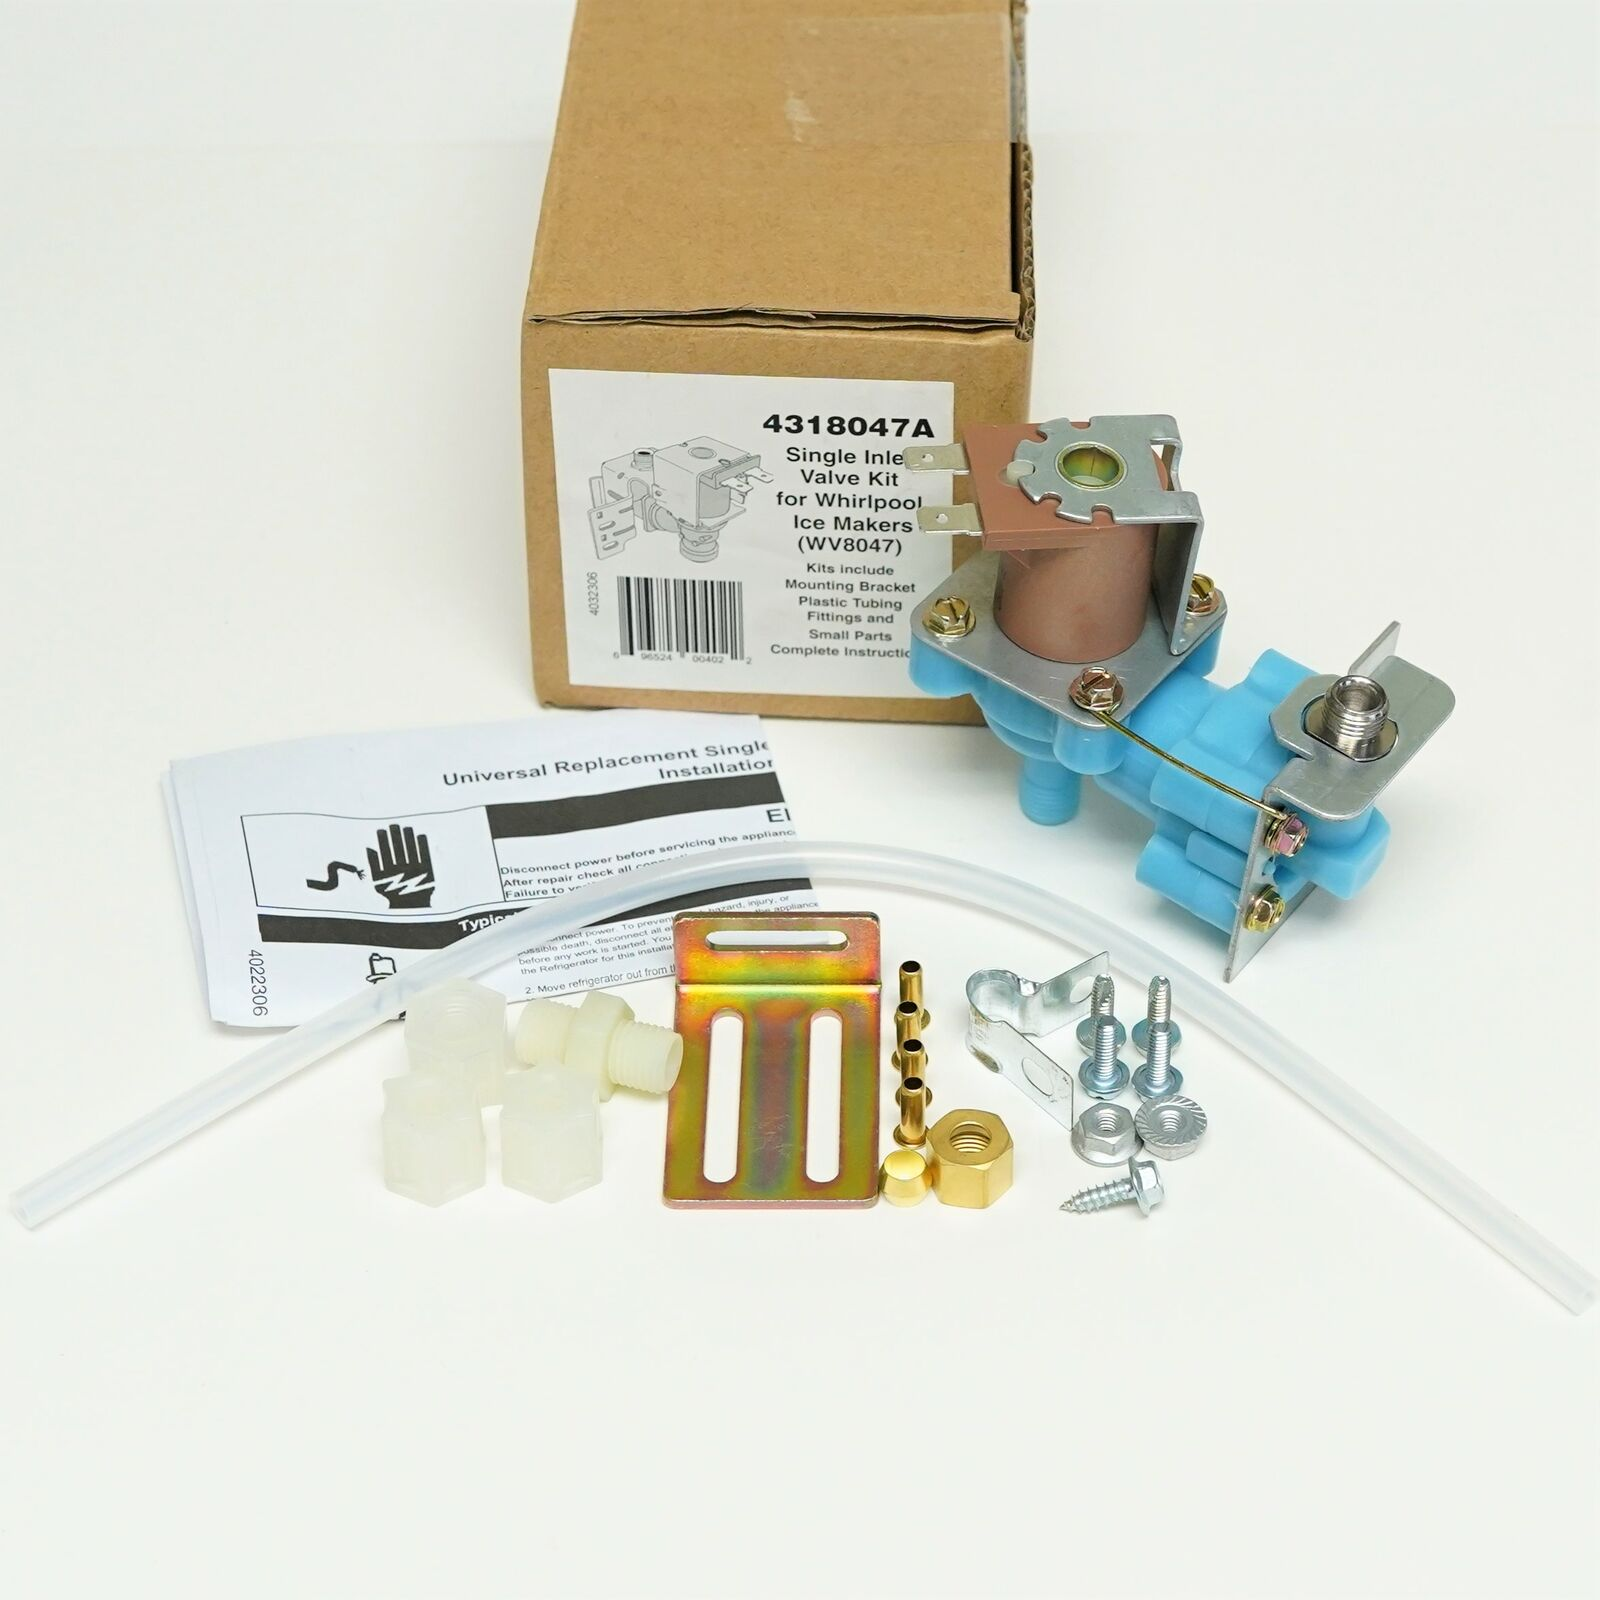 Wv8047 Refrigerator Icemaker Water Solenoid Valve For 4318047 Wiring Diagram Whirlpool 4317943 1 Of 5free Shipping